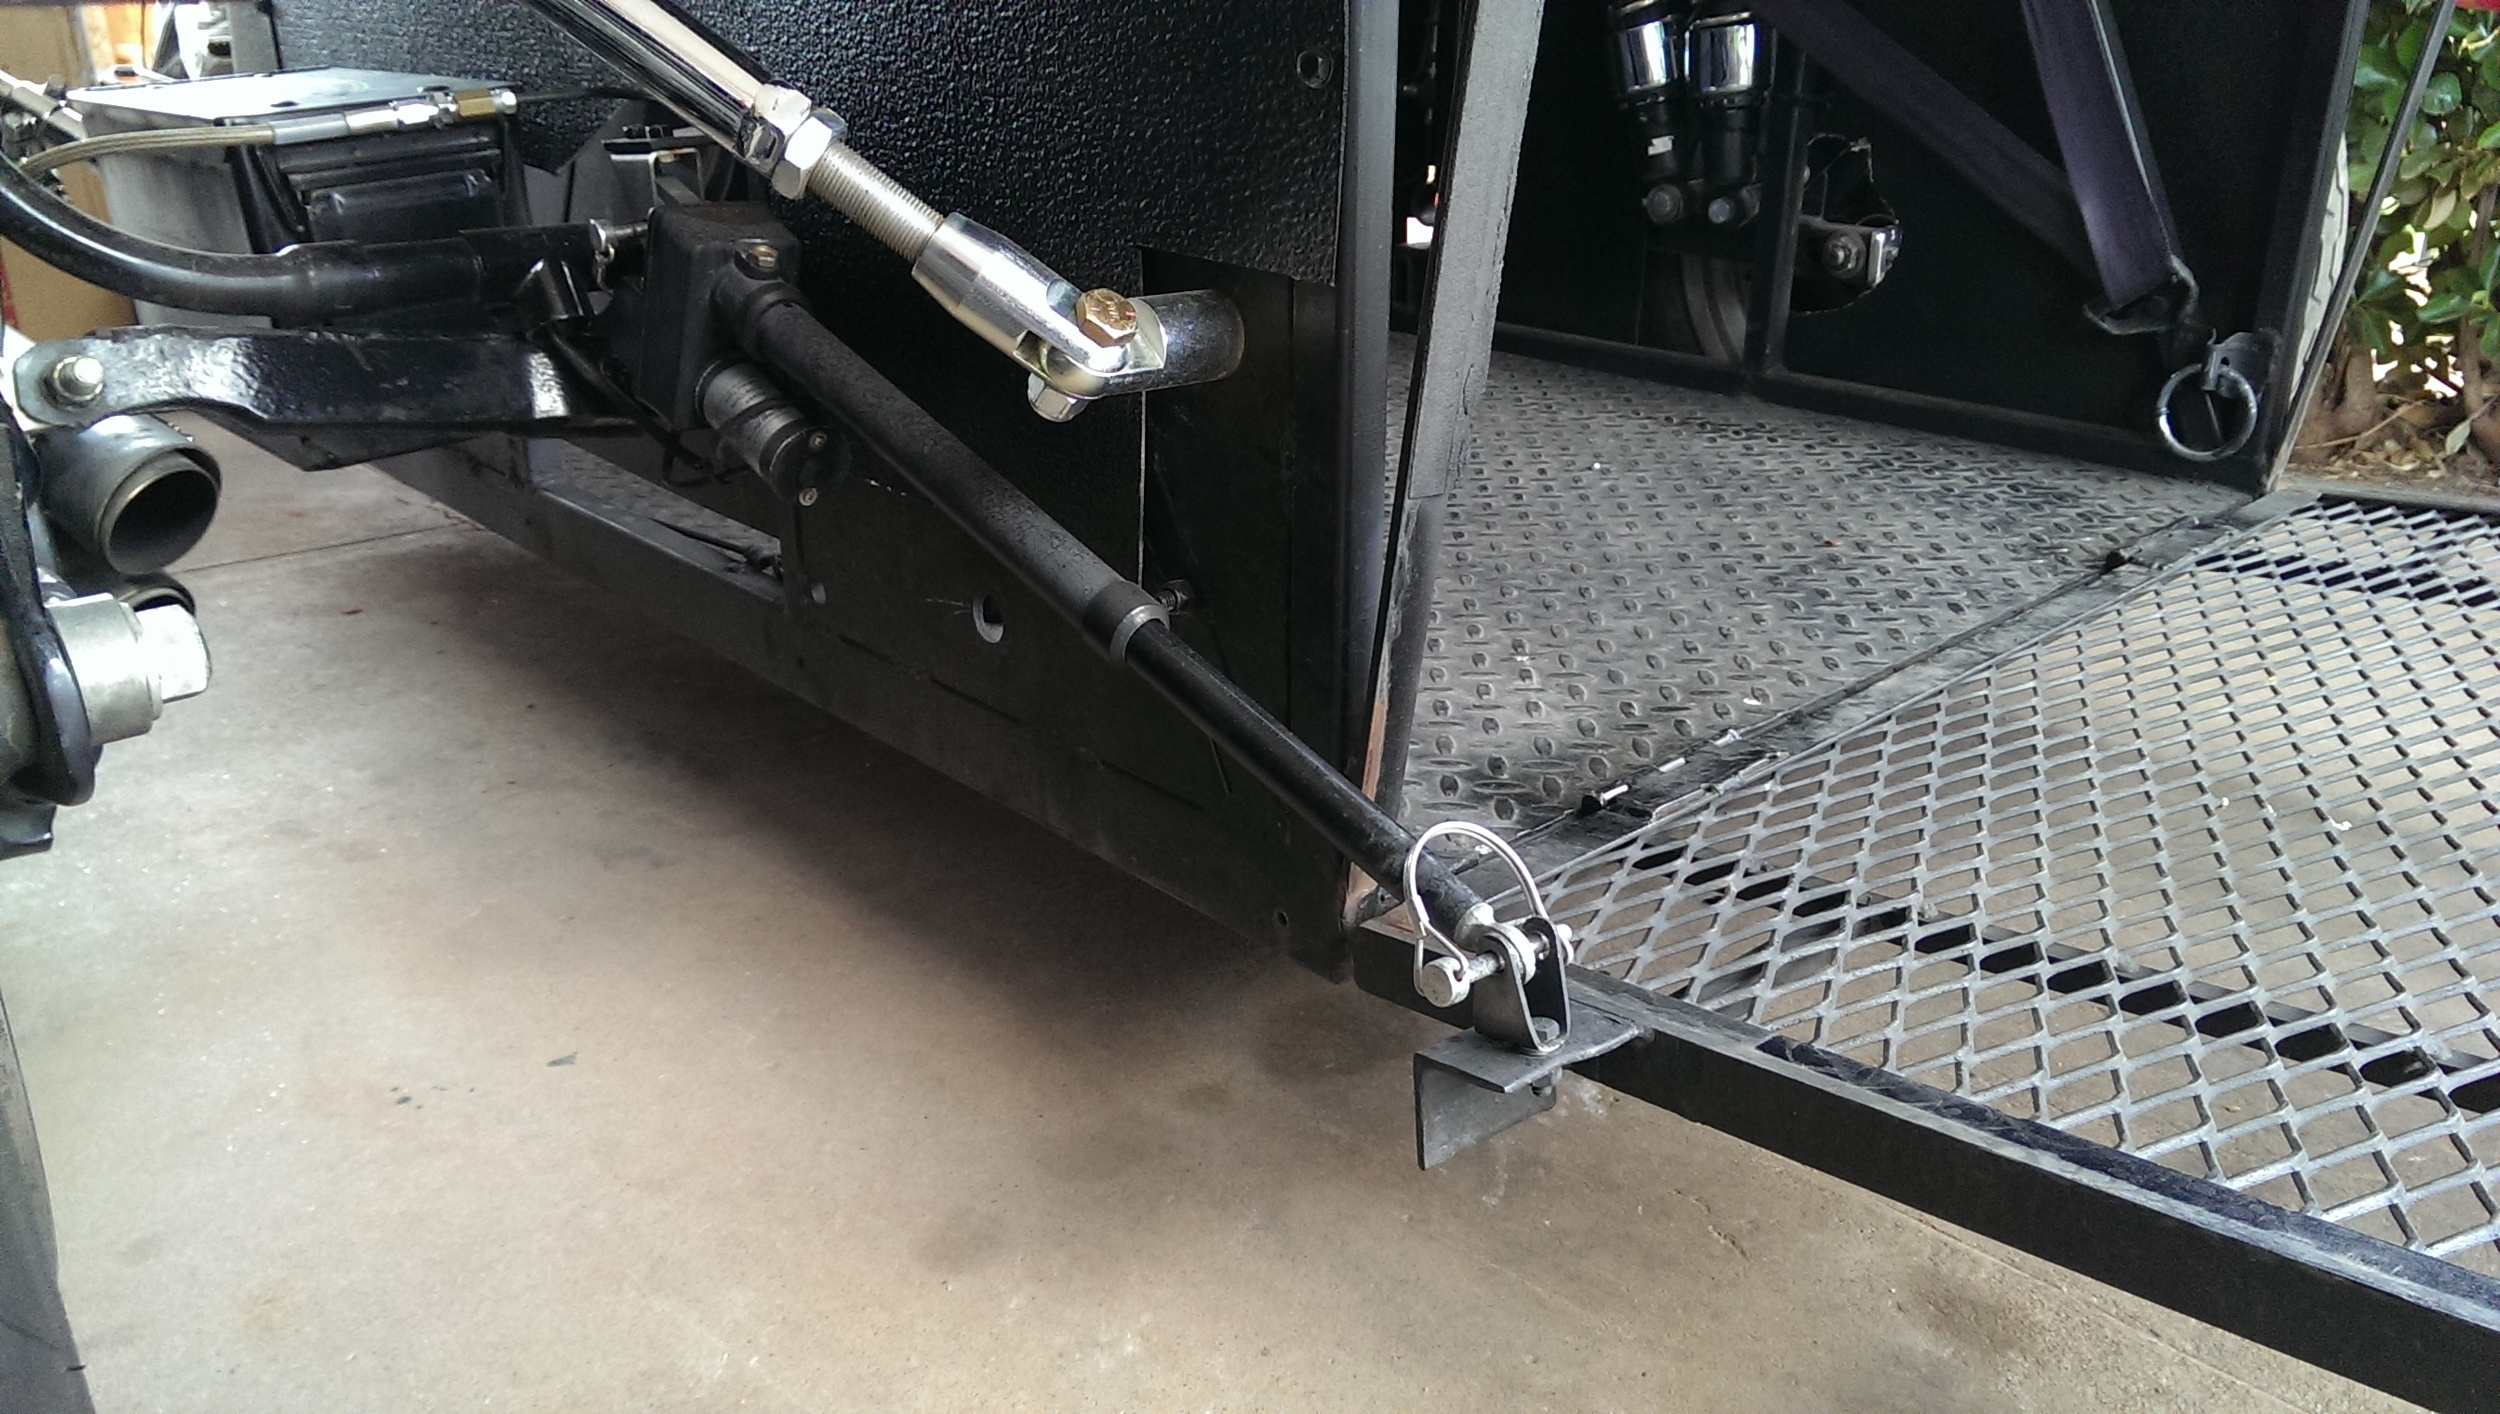 Opening and closing of the lift gate is done using this Linear actuator purchased through  ebay . Removable pins are used to attach the actuator in the event the battery or actuator fail.